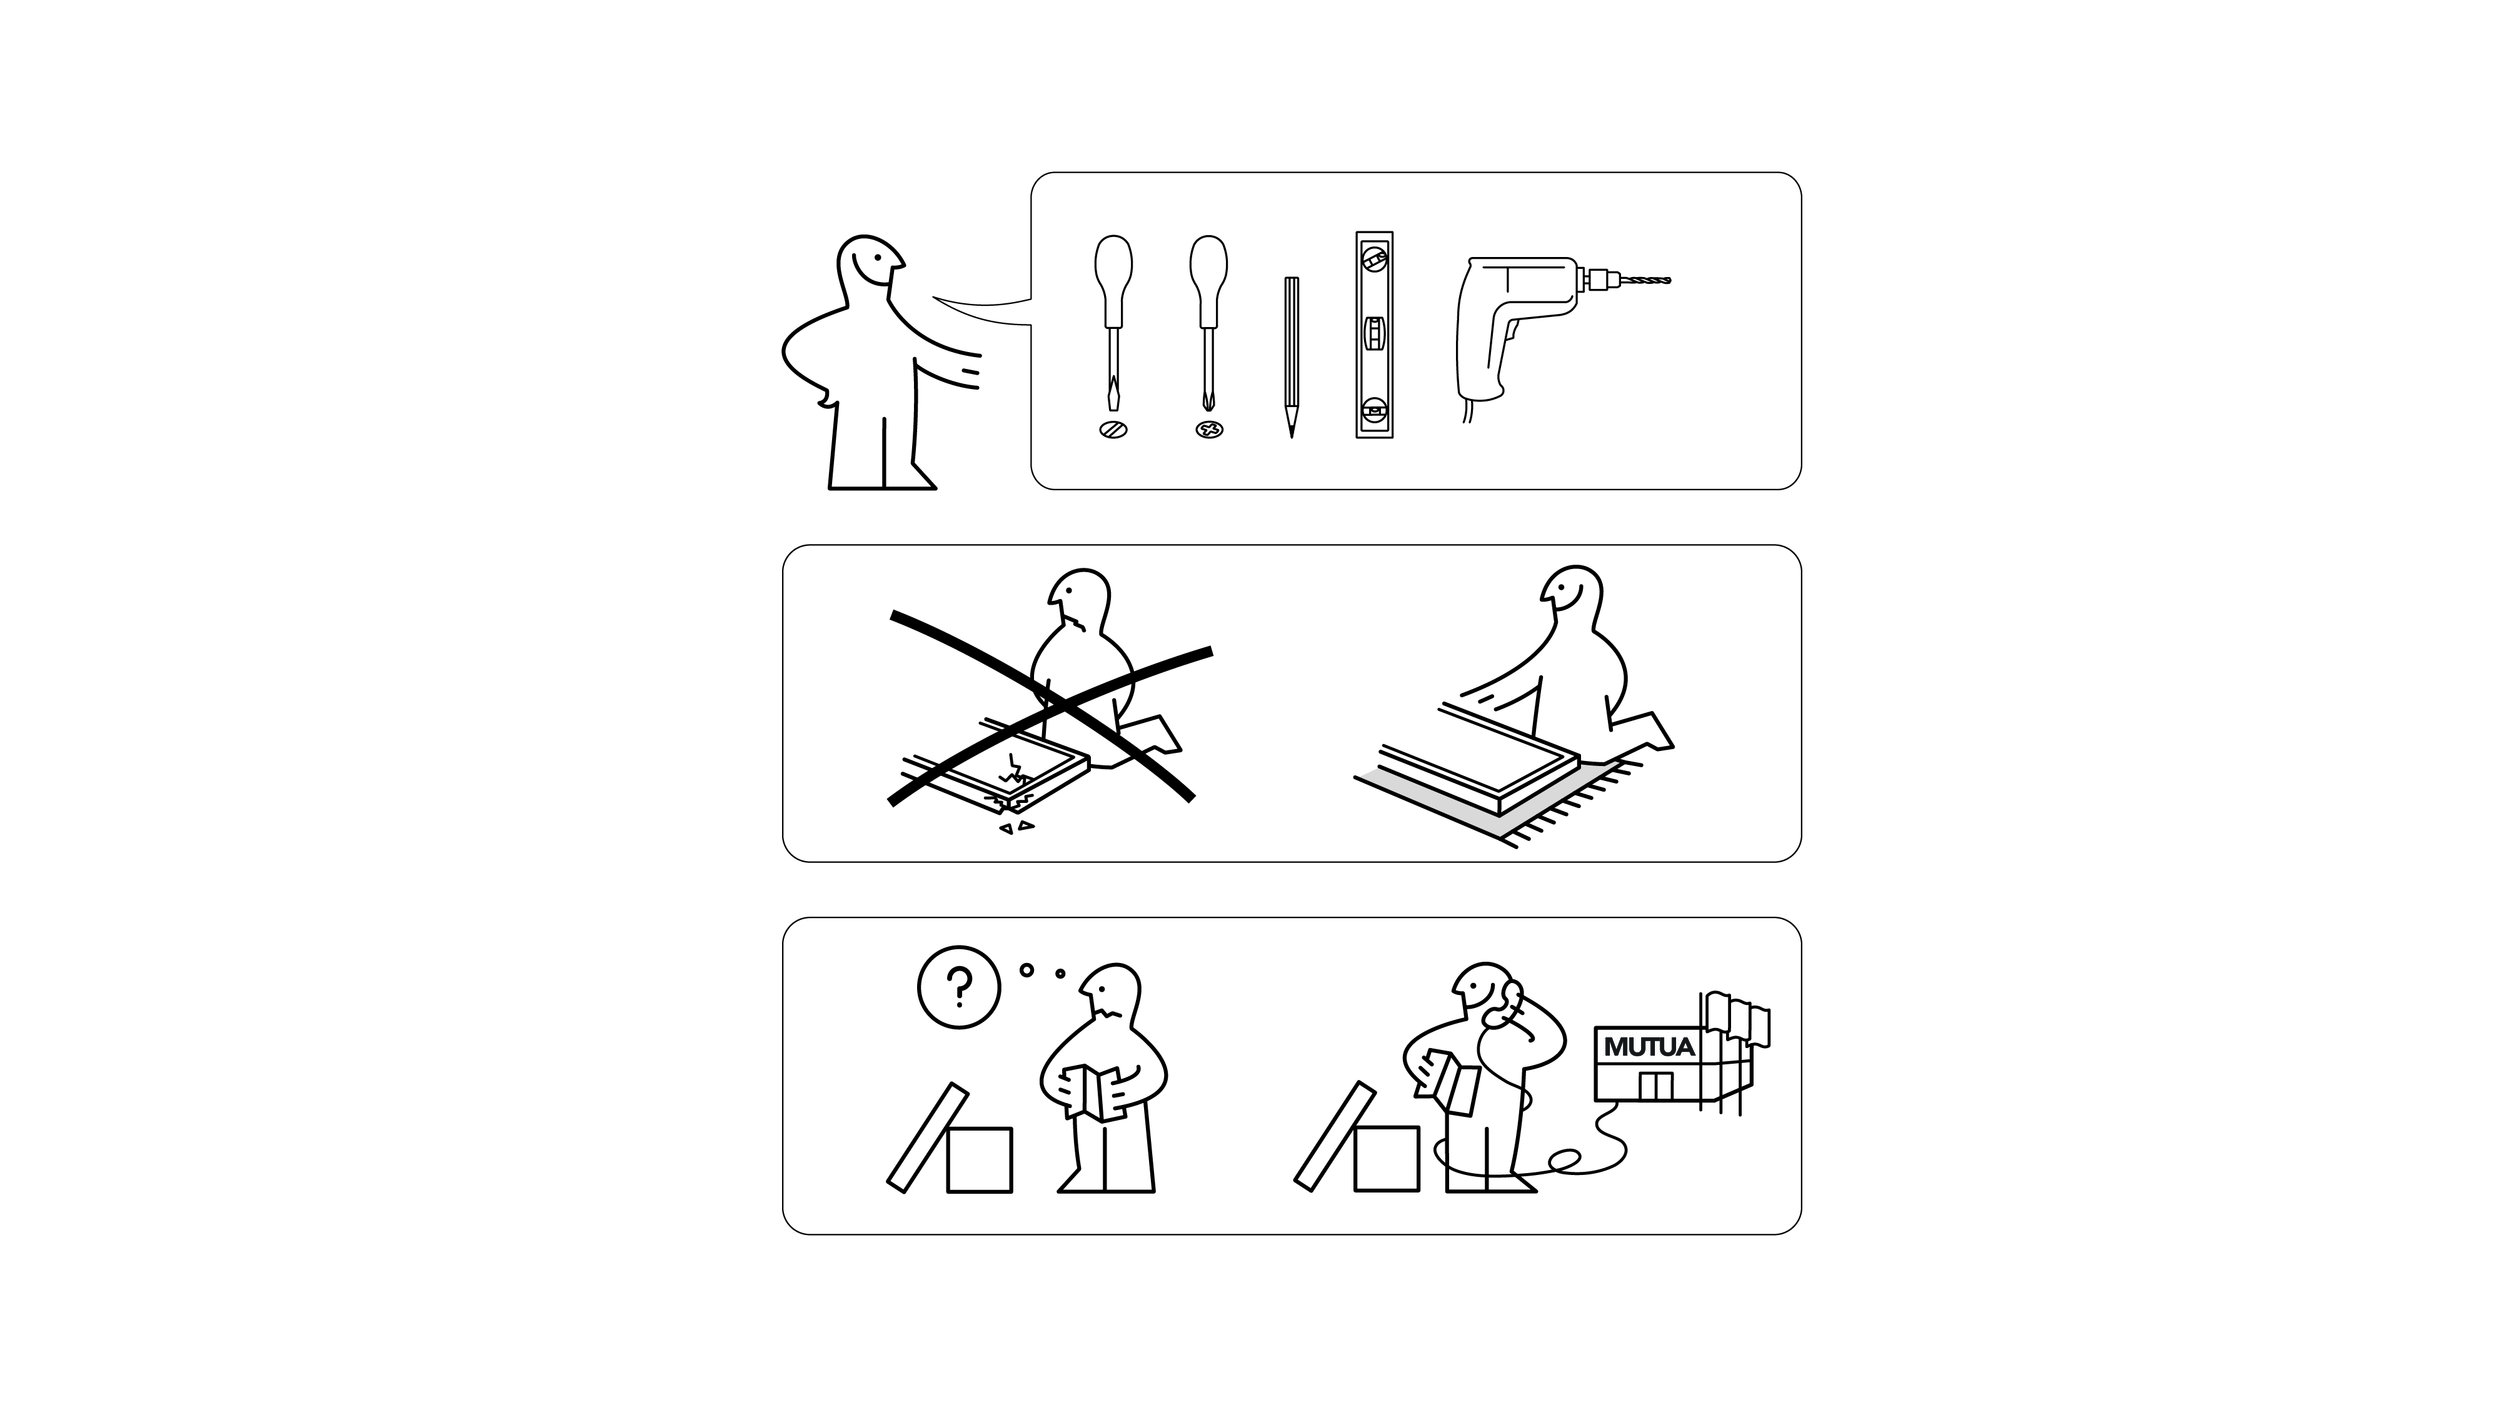 Ikea instructions-01.jpg